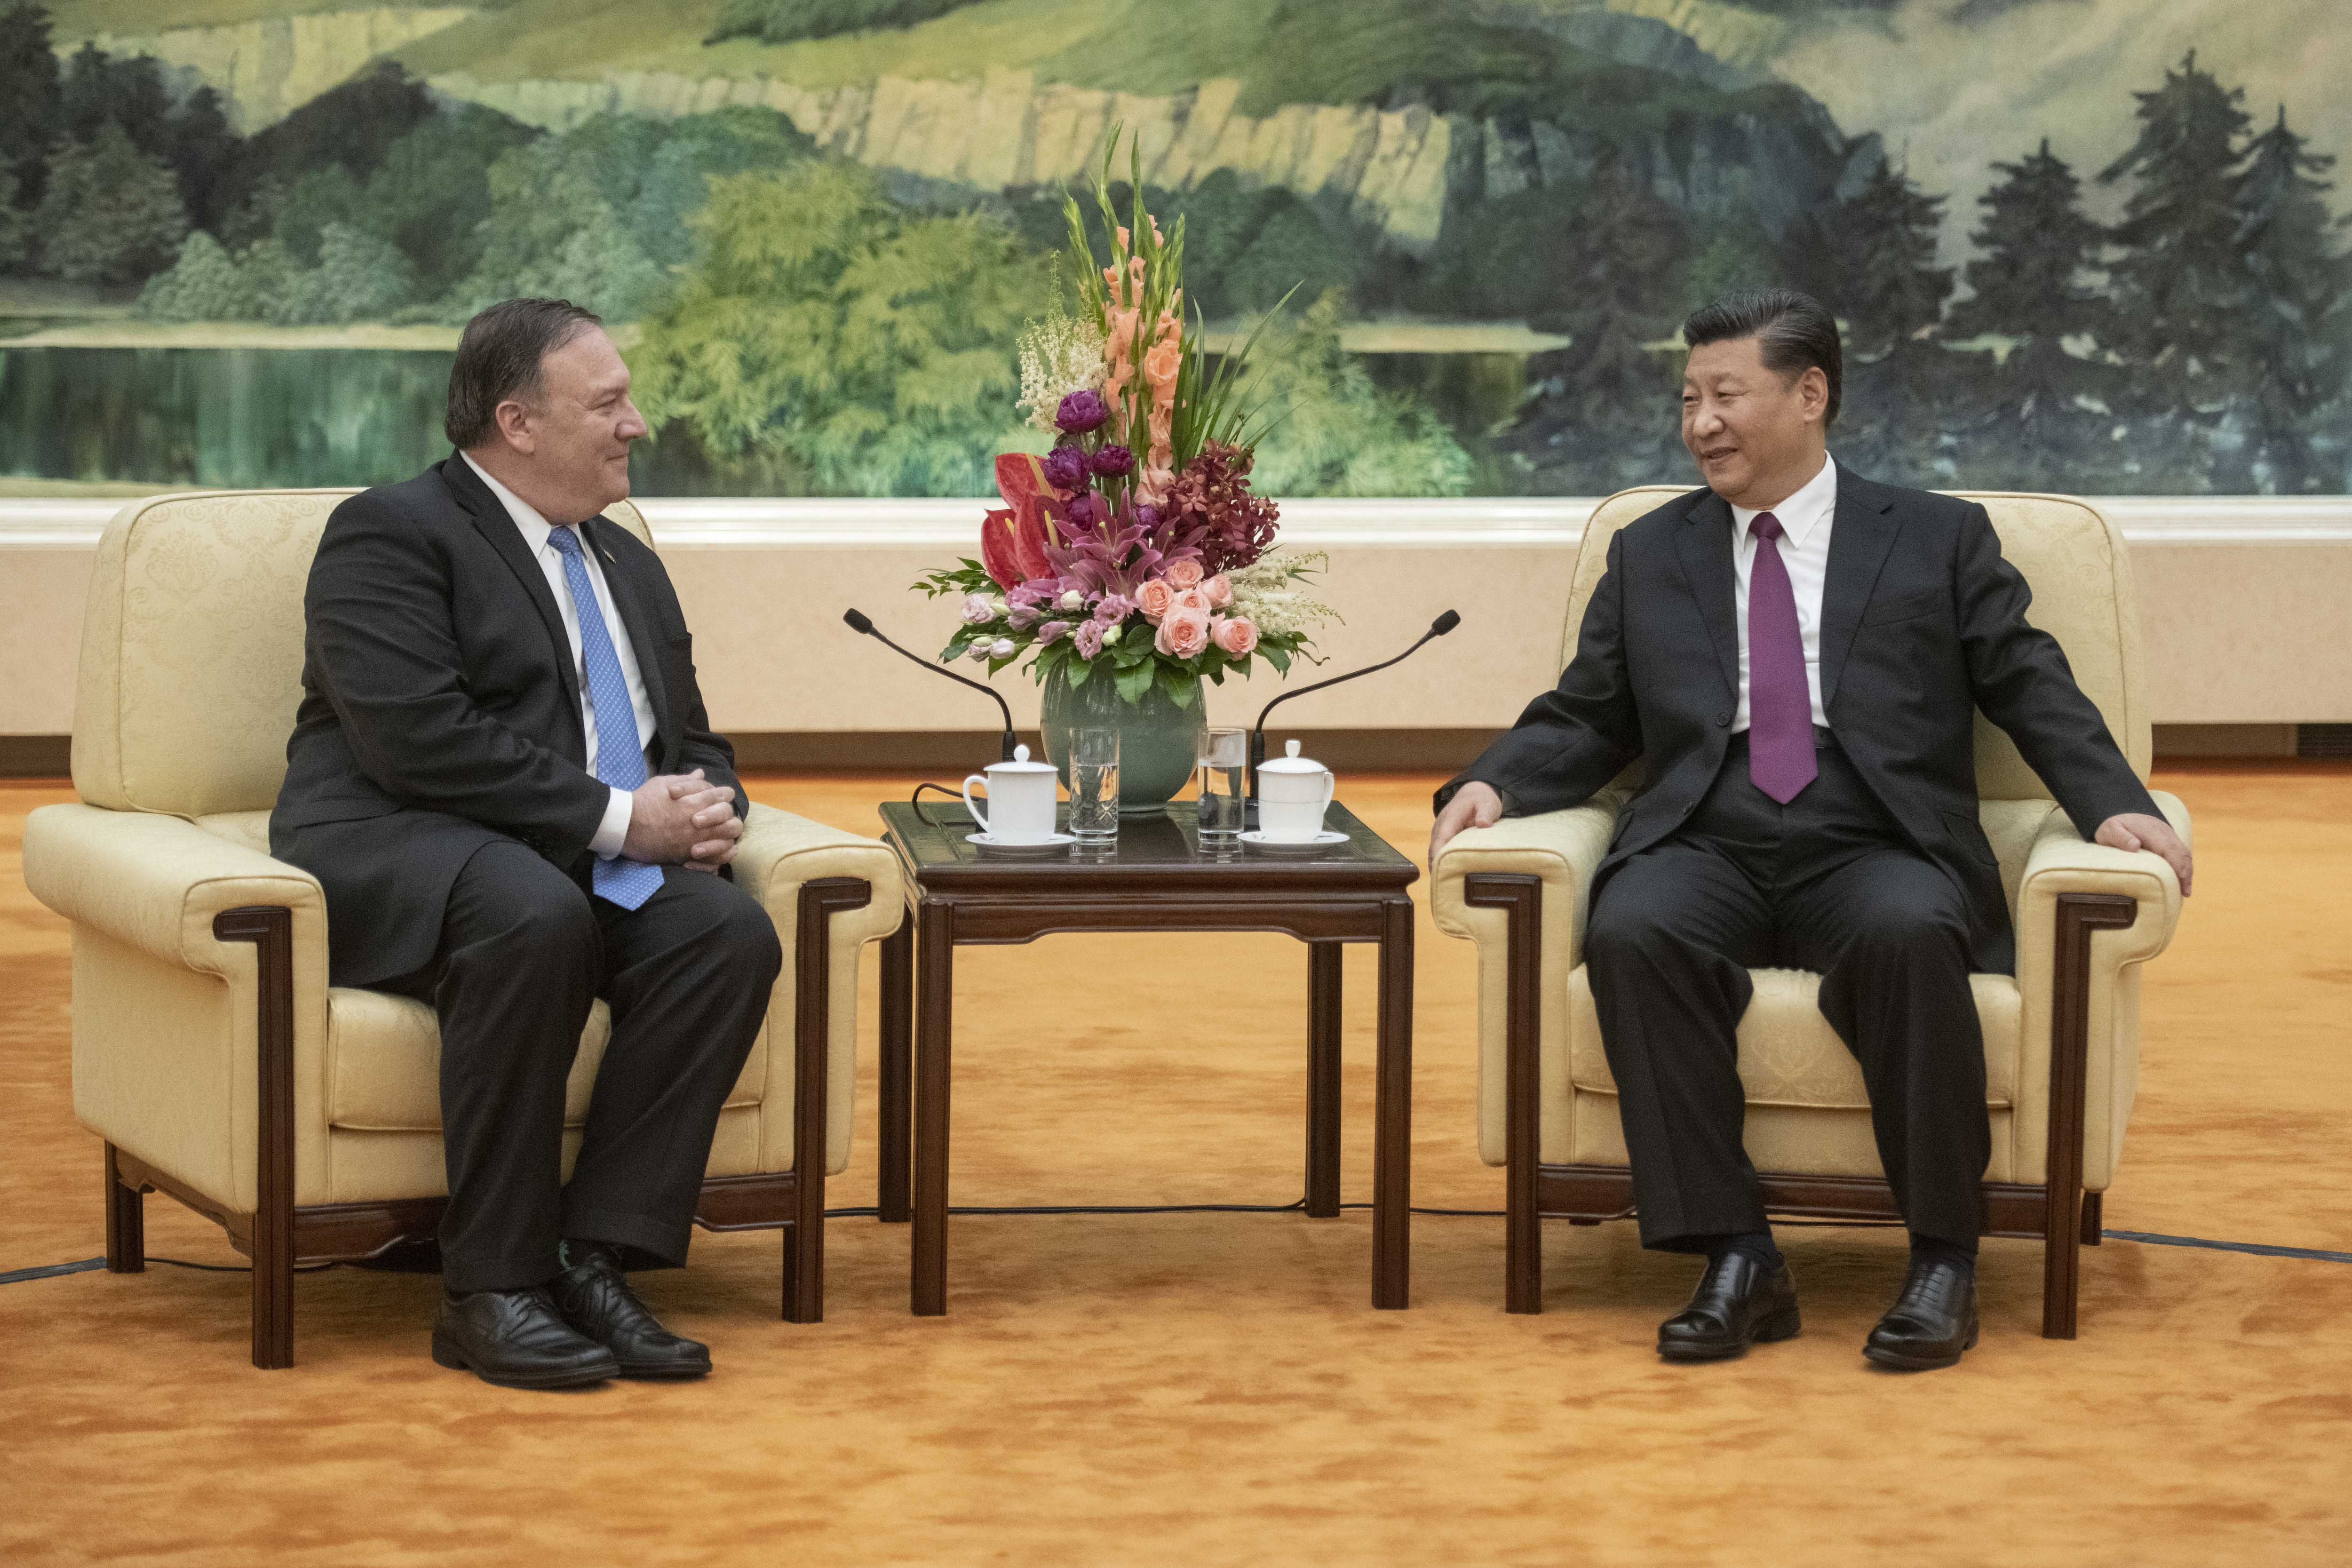 BEIJING, CHINA - JUNE 14: U.S. Secretary of State Mike Pompeo (L) and Chinese President Xi Jinping attend a meeting in the Great Hall of the People June 14, 2018 in Beijing, China. (Photo by Fred Dufour-Pool/Getty Images)